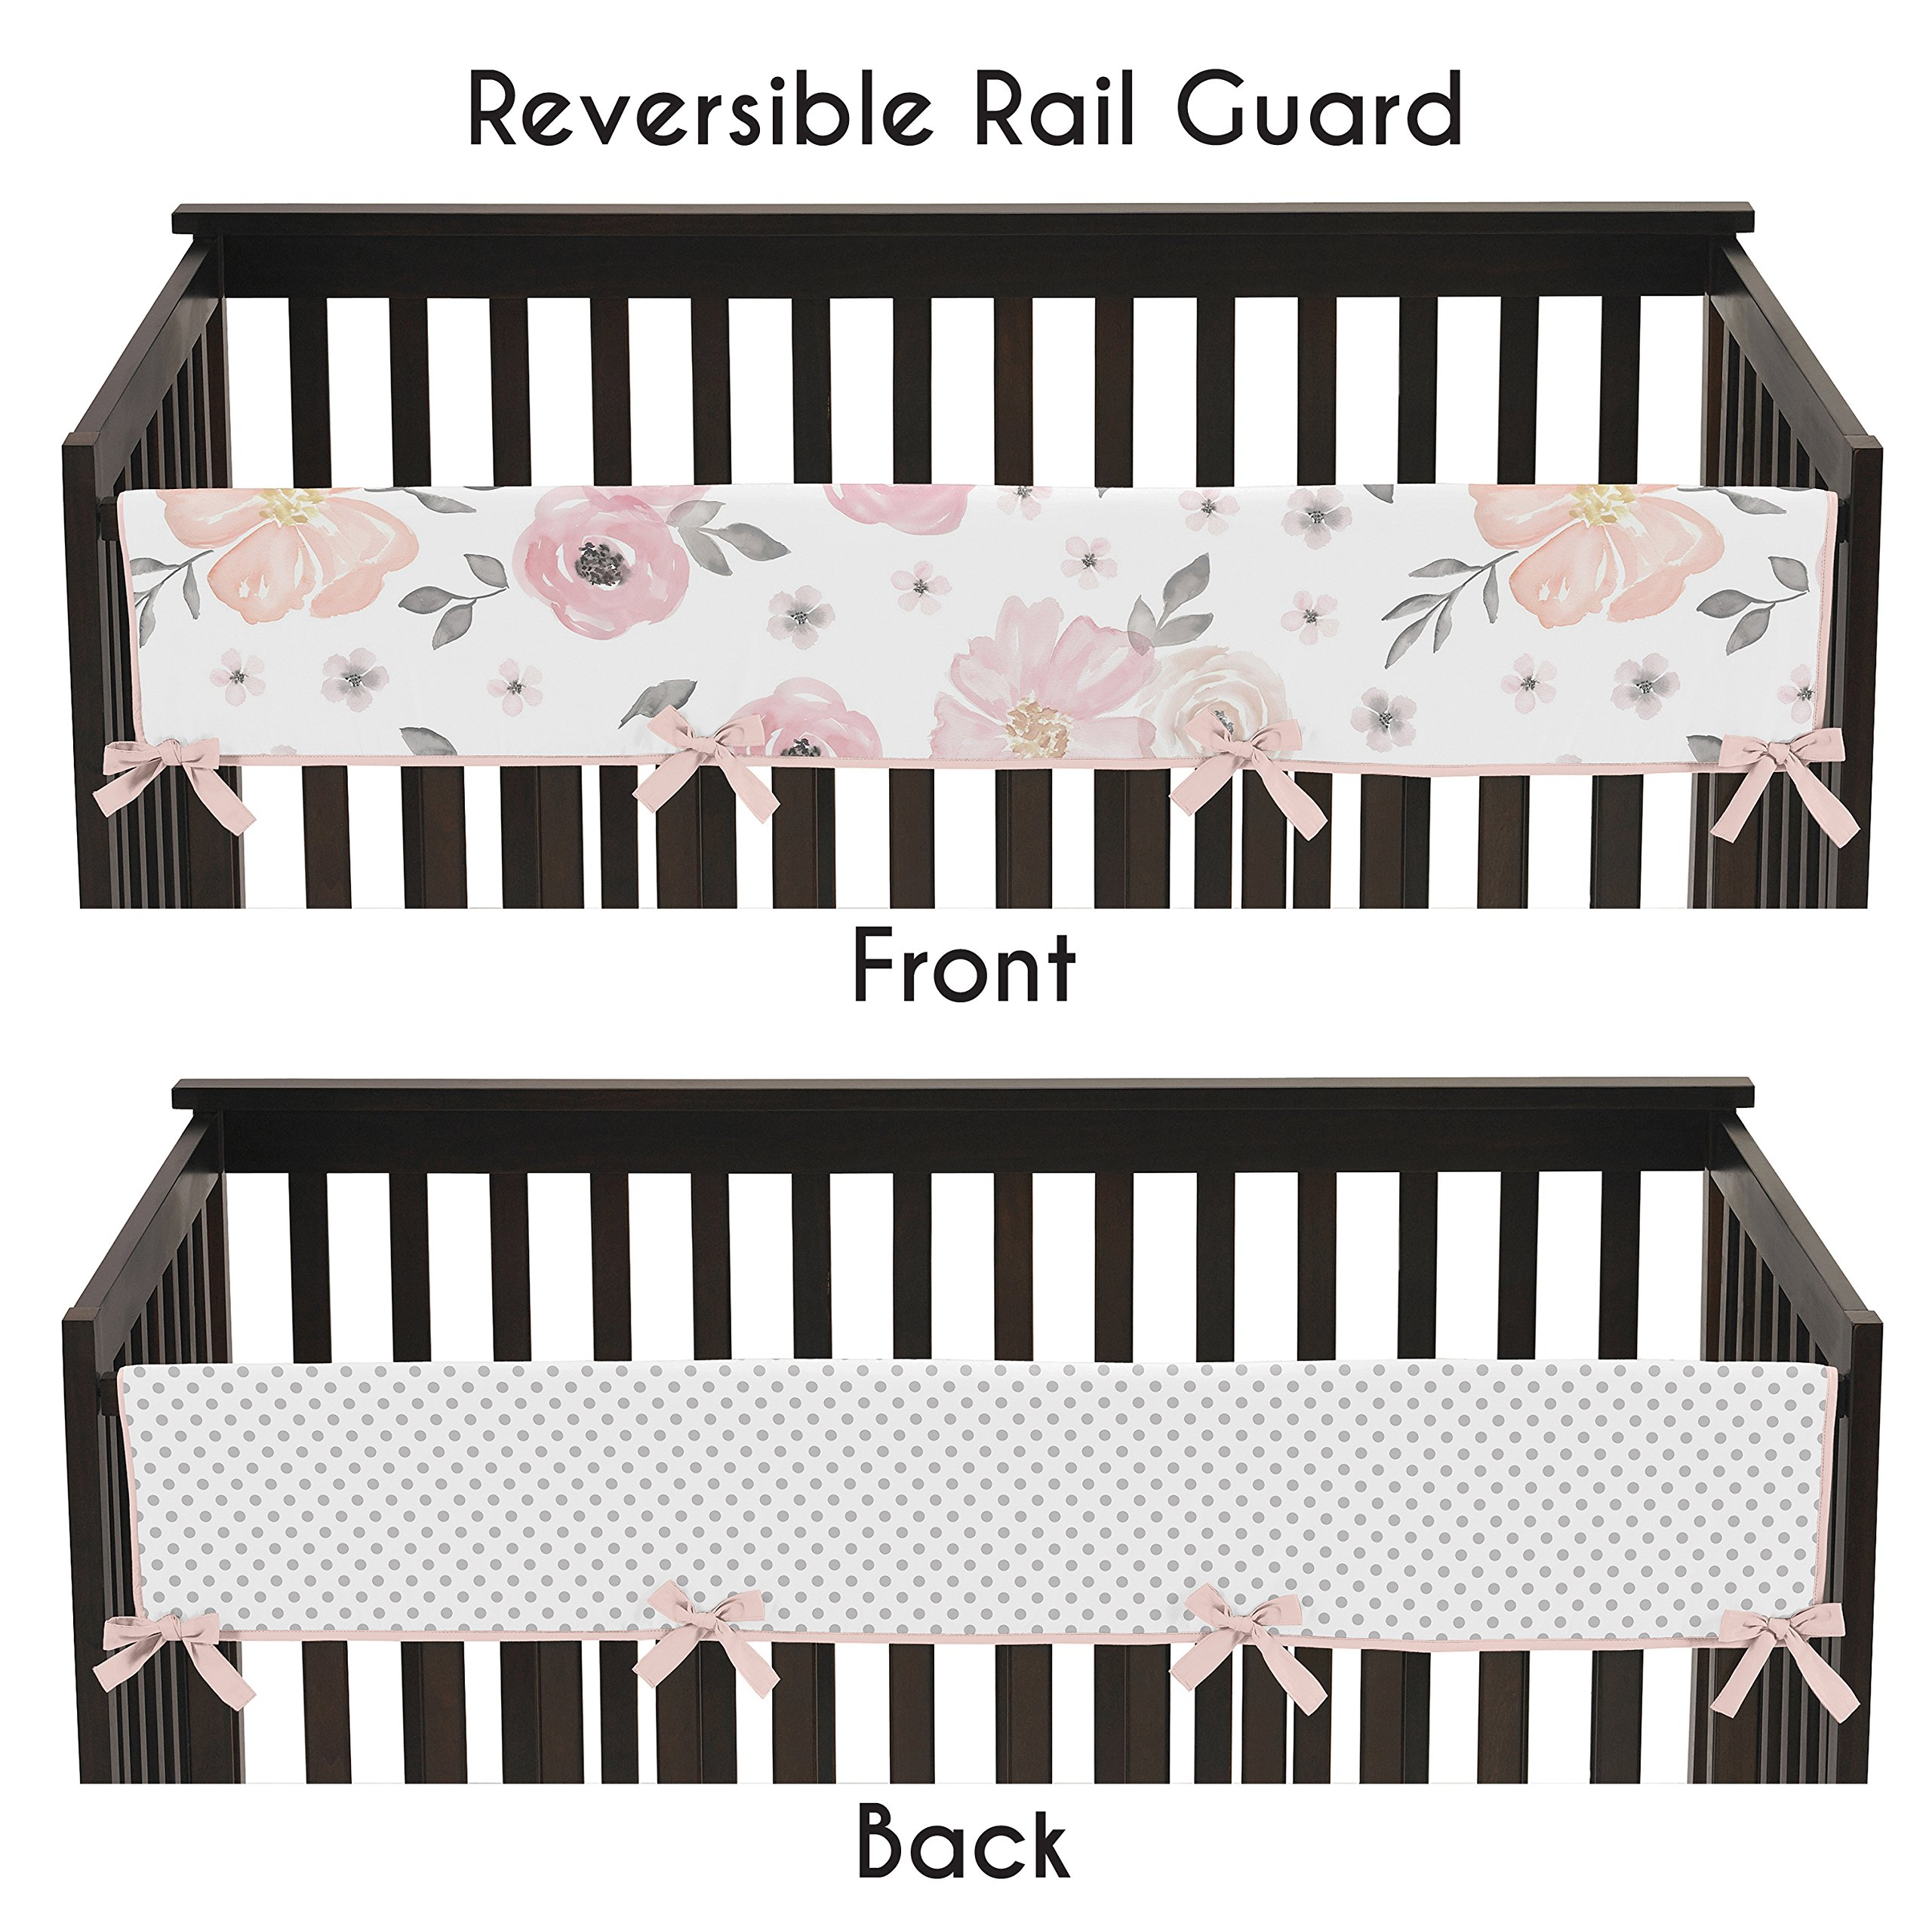 set roses bedding overstock cribs product piece free shipping crib designs rileys riley today jojo sweet s baby